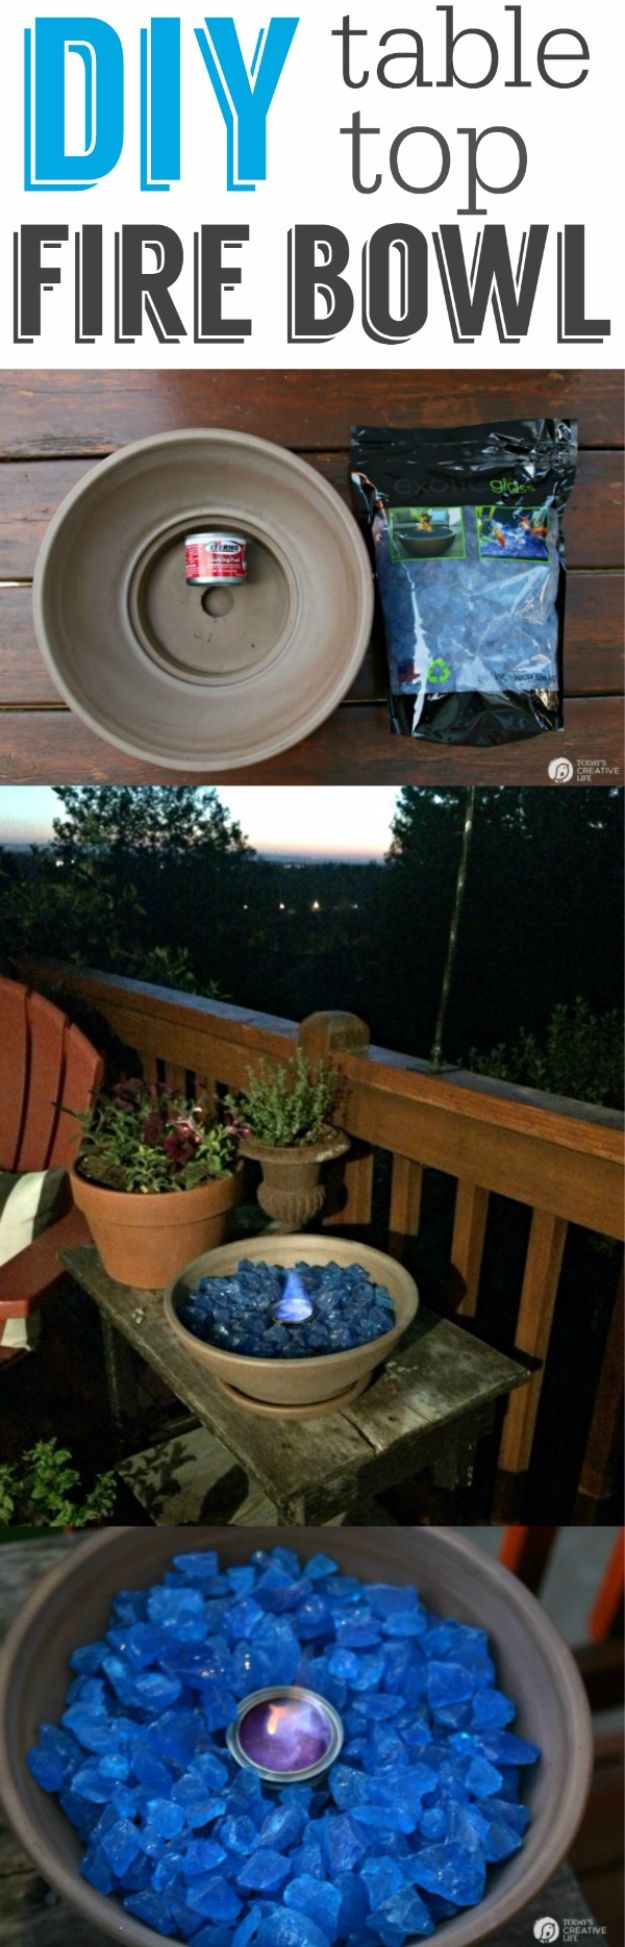 DIY Porch and Patio Ideas - DIY Tabletop Fire Bowl - Decor Projects and Furniture Tutorials You Can Build for the Outdoors - Lights and Lighting, Mason Jar Crafts, Rocking Chairs, Wreaths, Swings, Bench, Cushions, Chairs, Daybeds and Pallet Signs